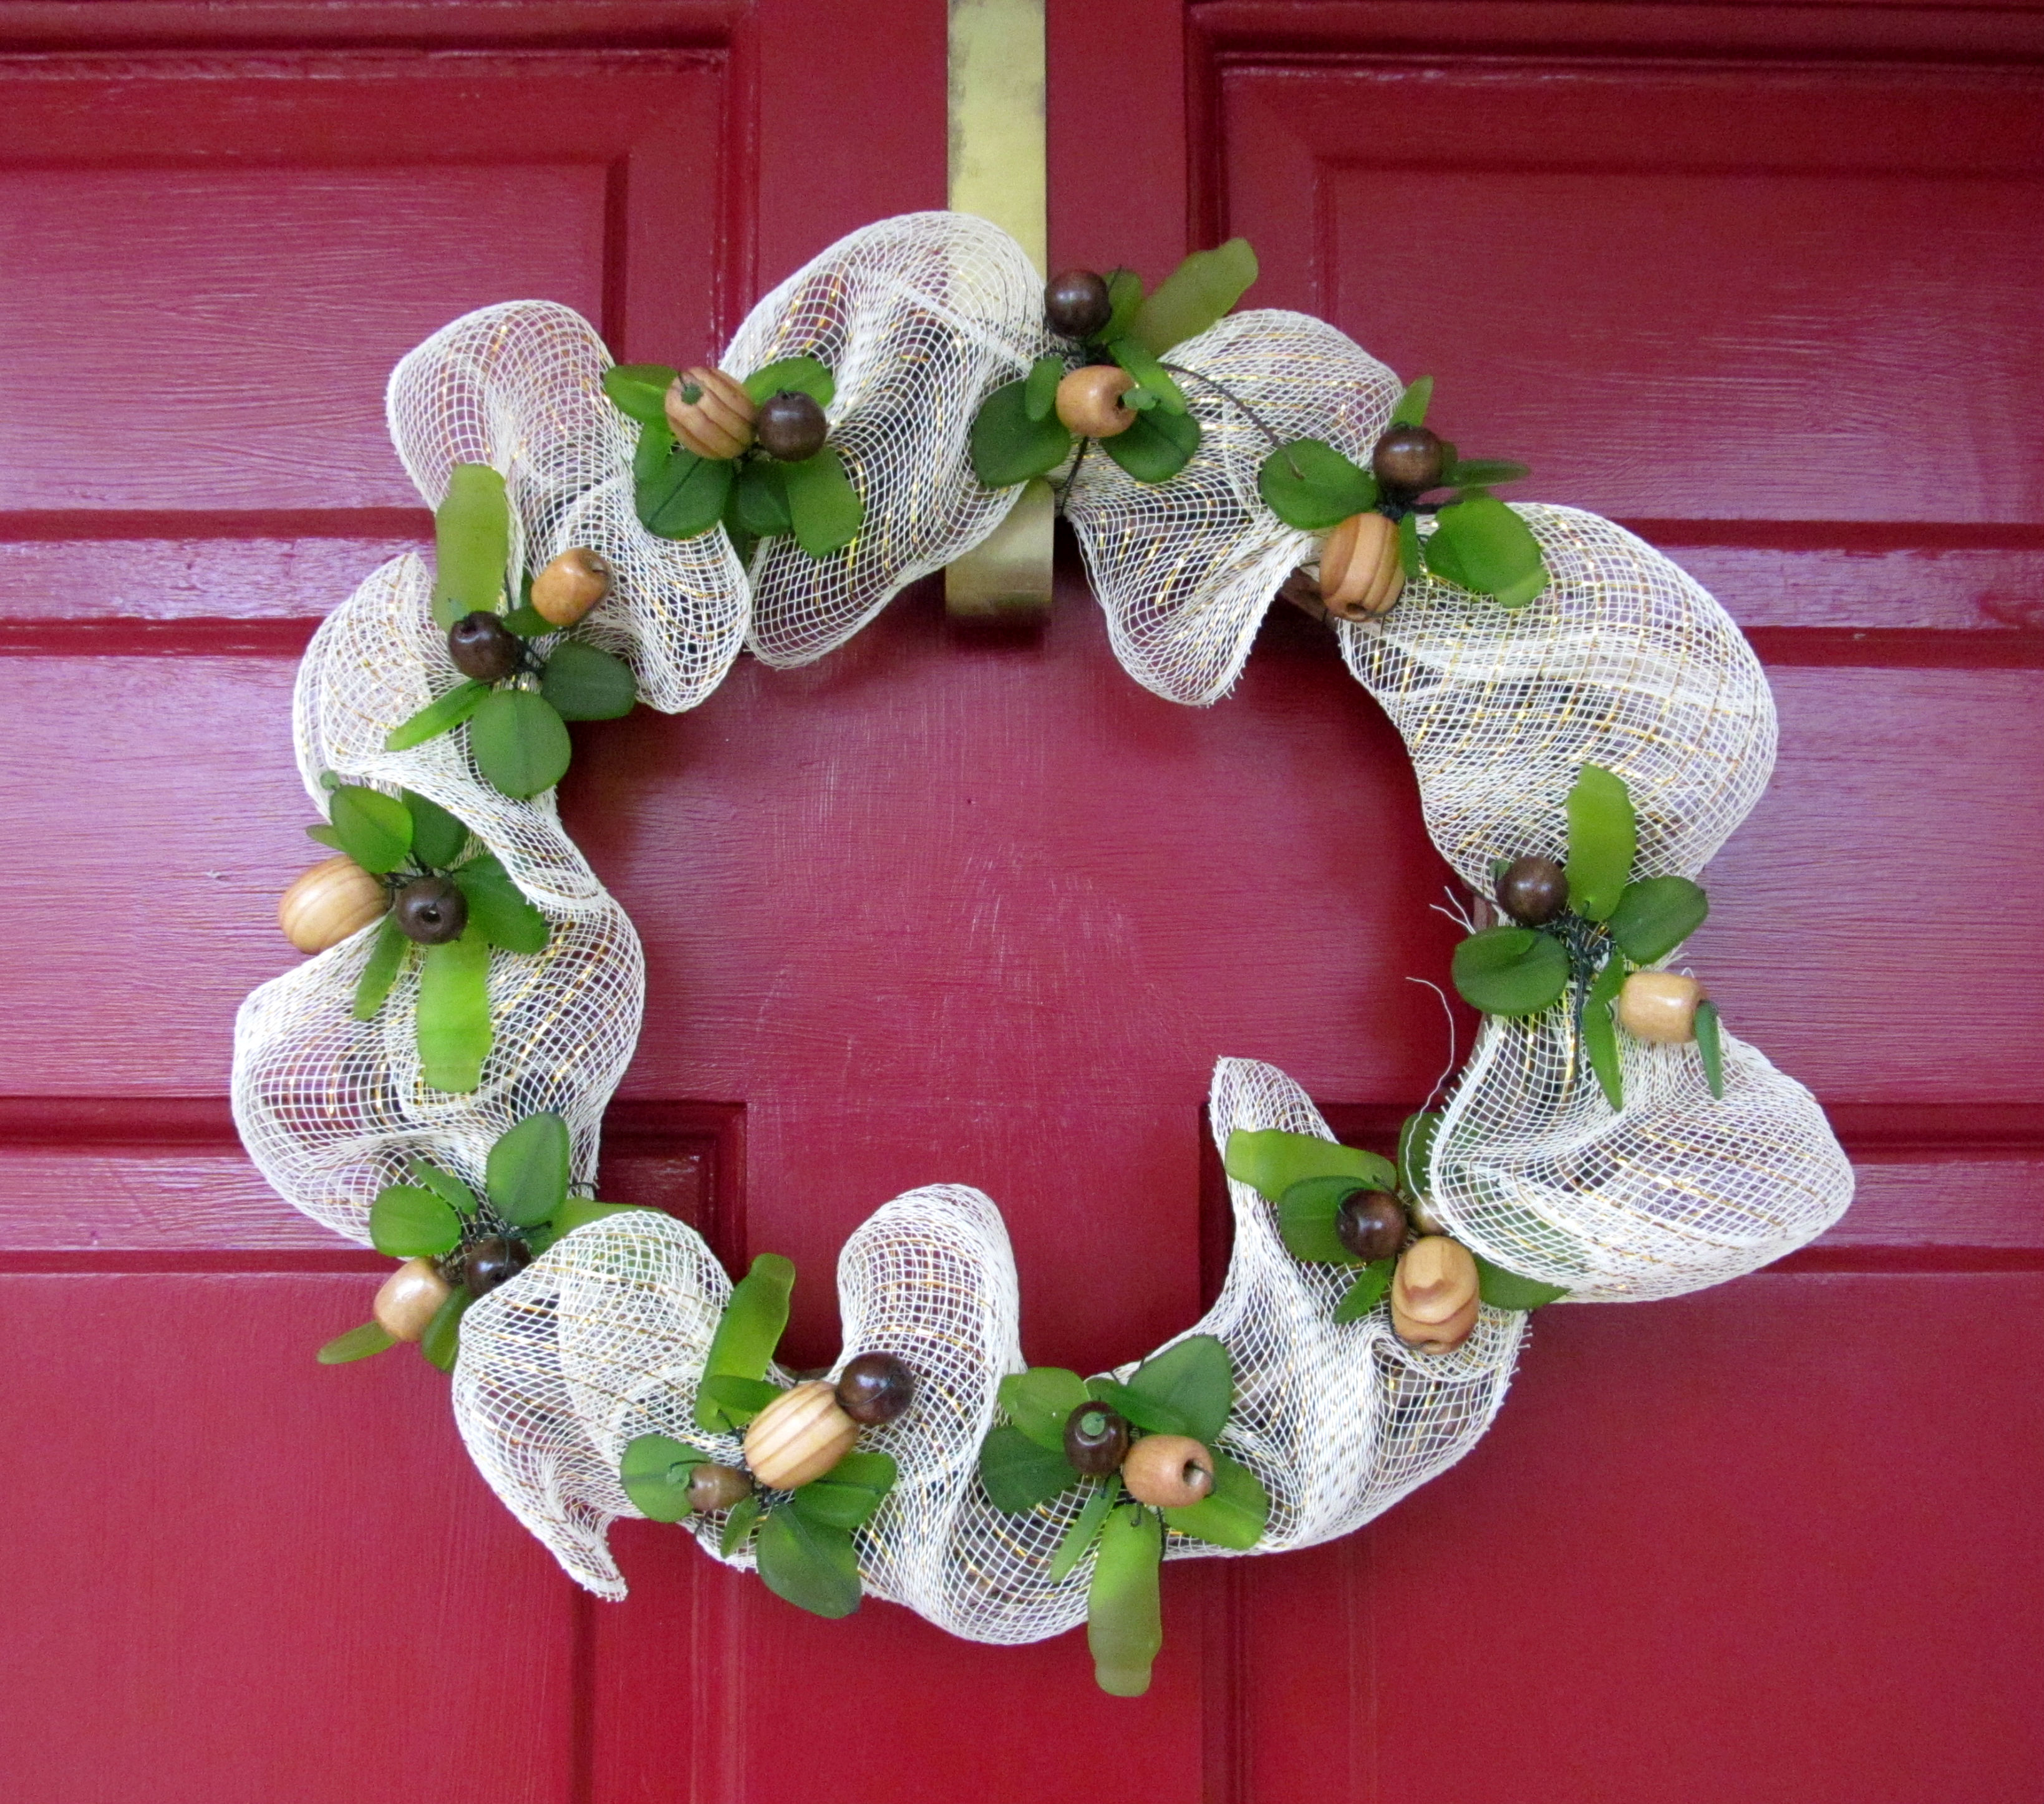 Sea Glass Wreath by Cynthia Riggs